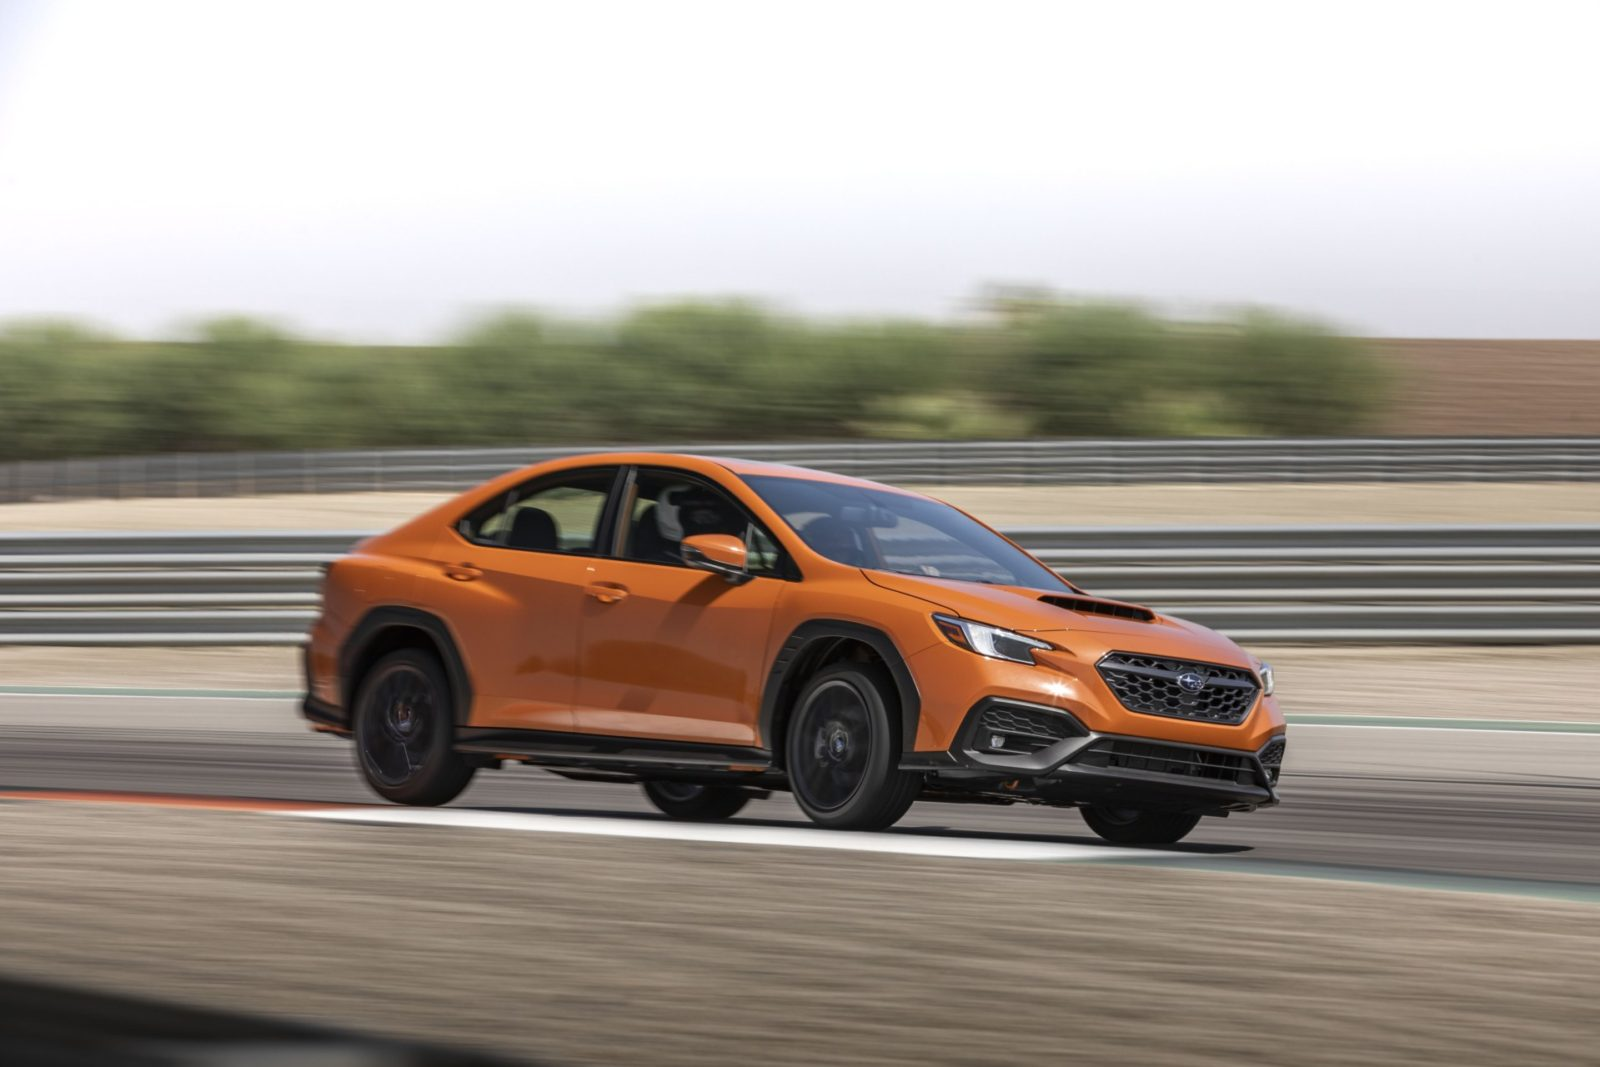 2022-subaru-wrx-unveiled-with-familiar-shape-and-package,-all-new-platform